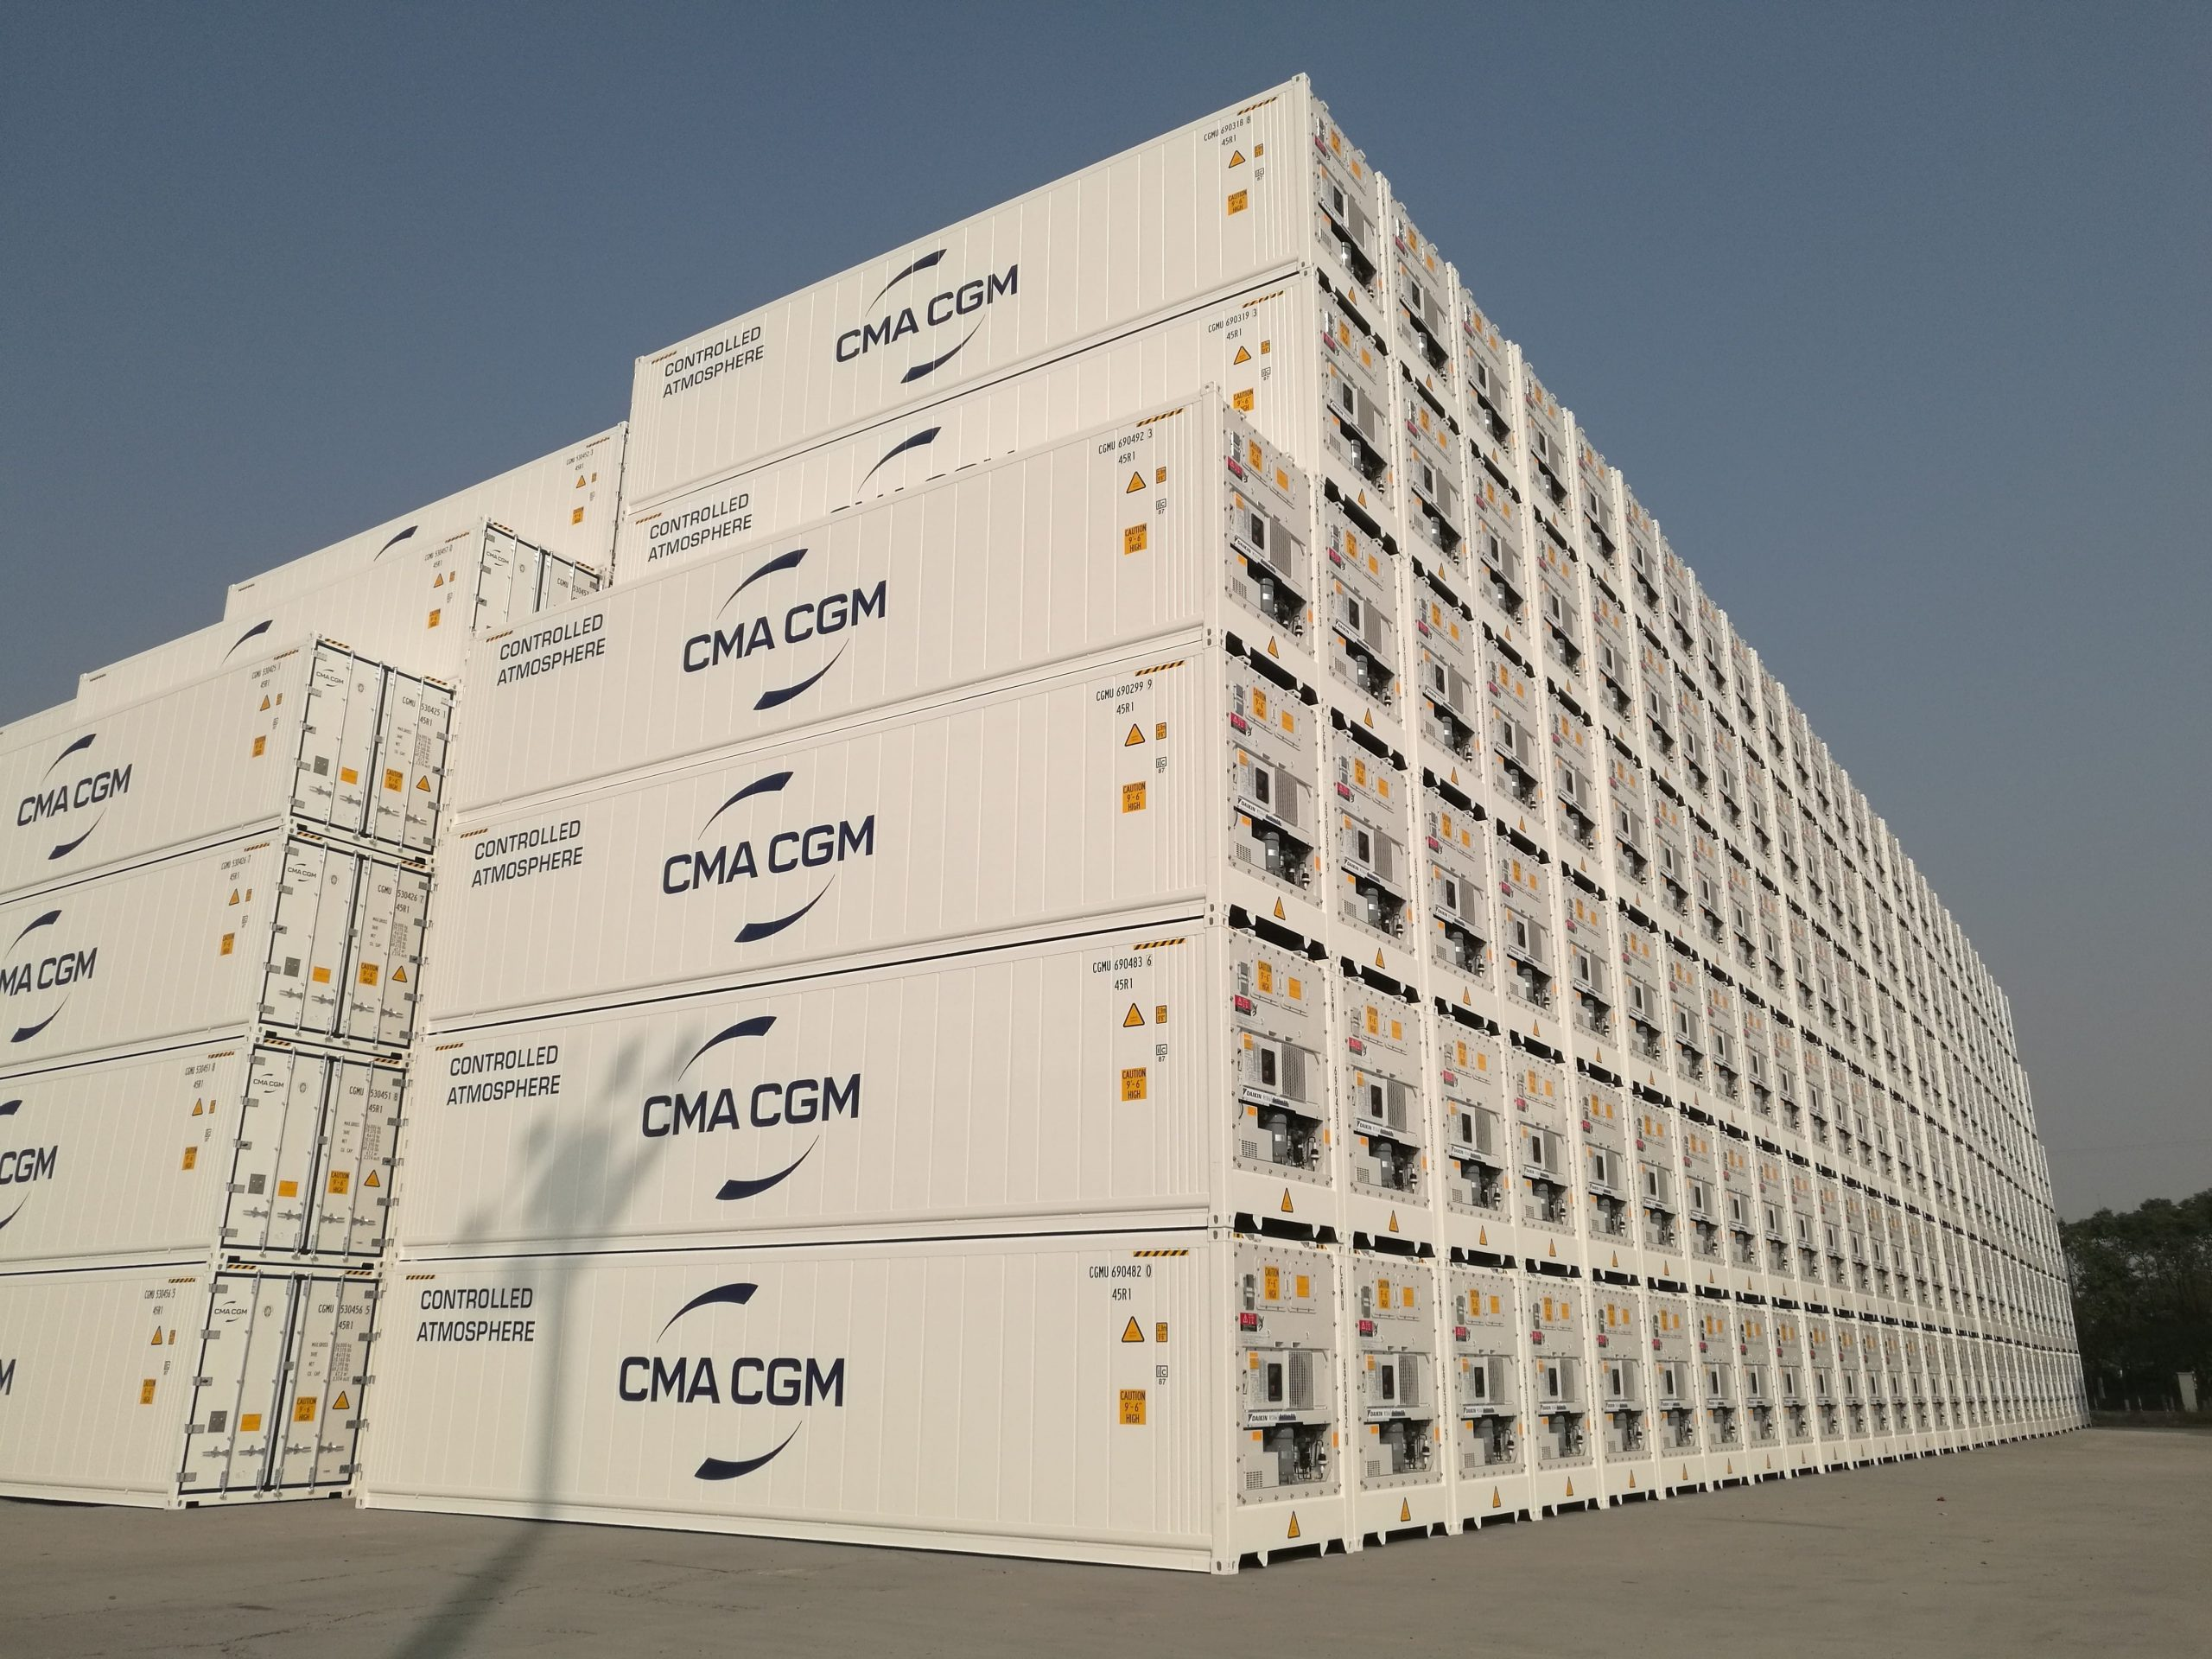 Daikin's Active CA container technology powers CMA CGM's